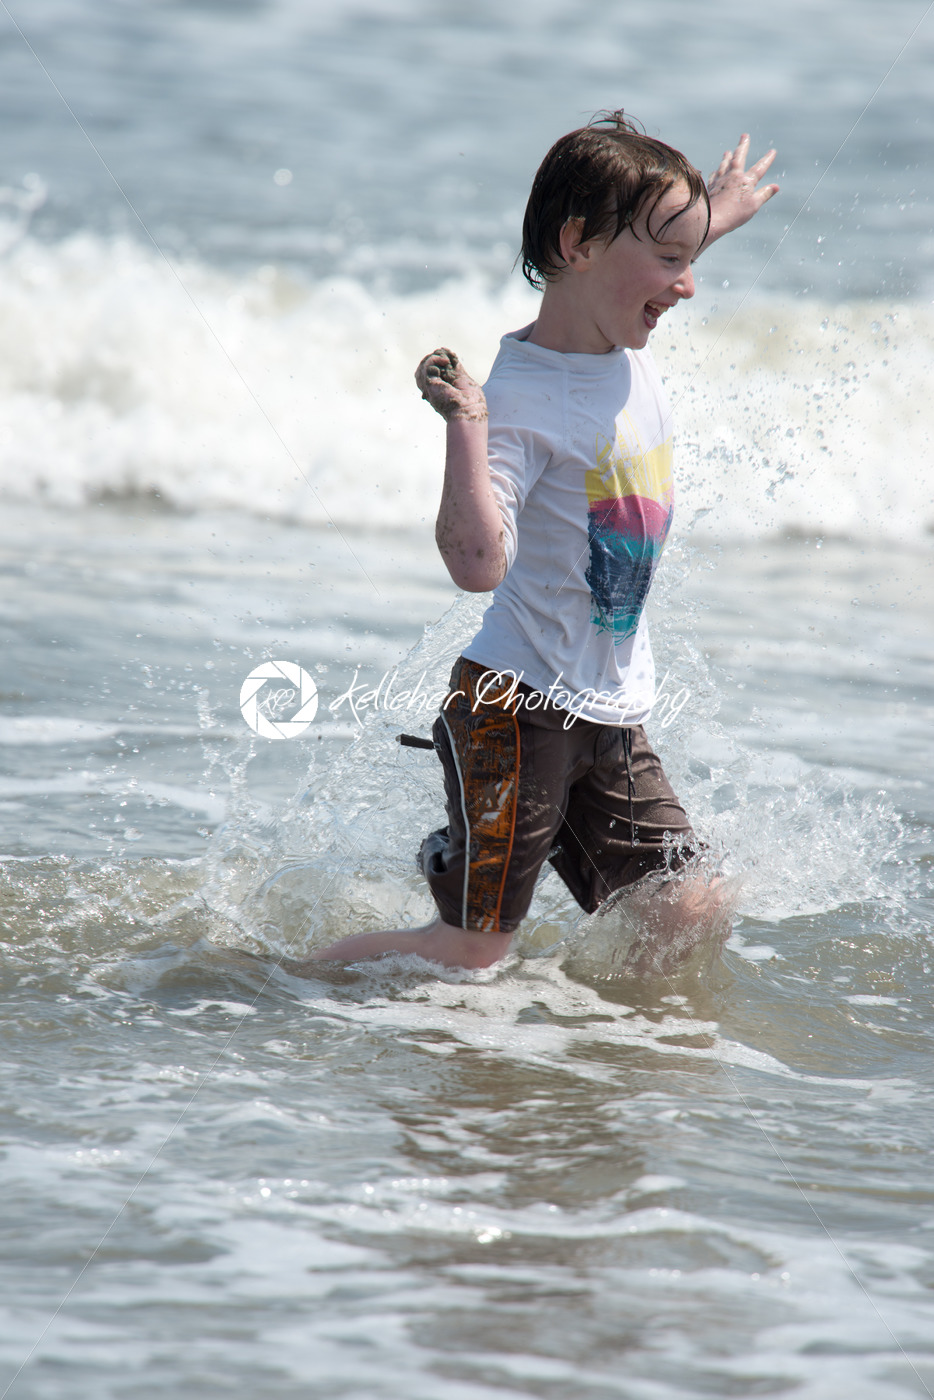 A happy young boy child running playing and having fun in the surf and waves of a sandy sunny beach - Kelleher Photography Store